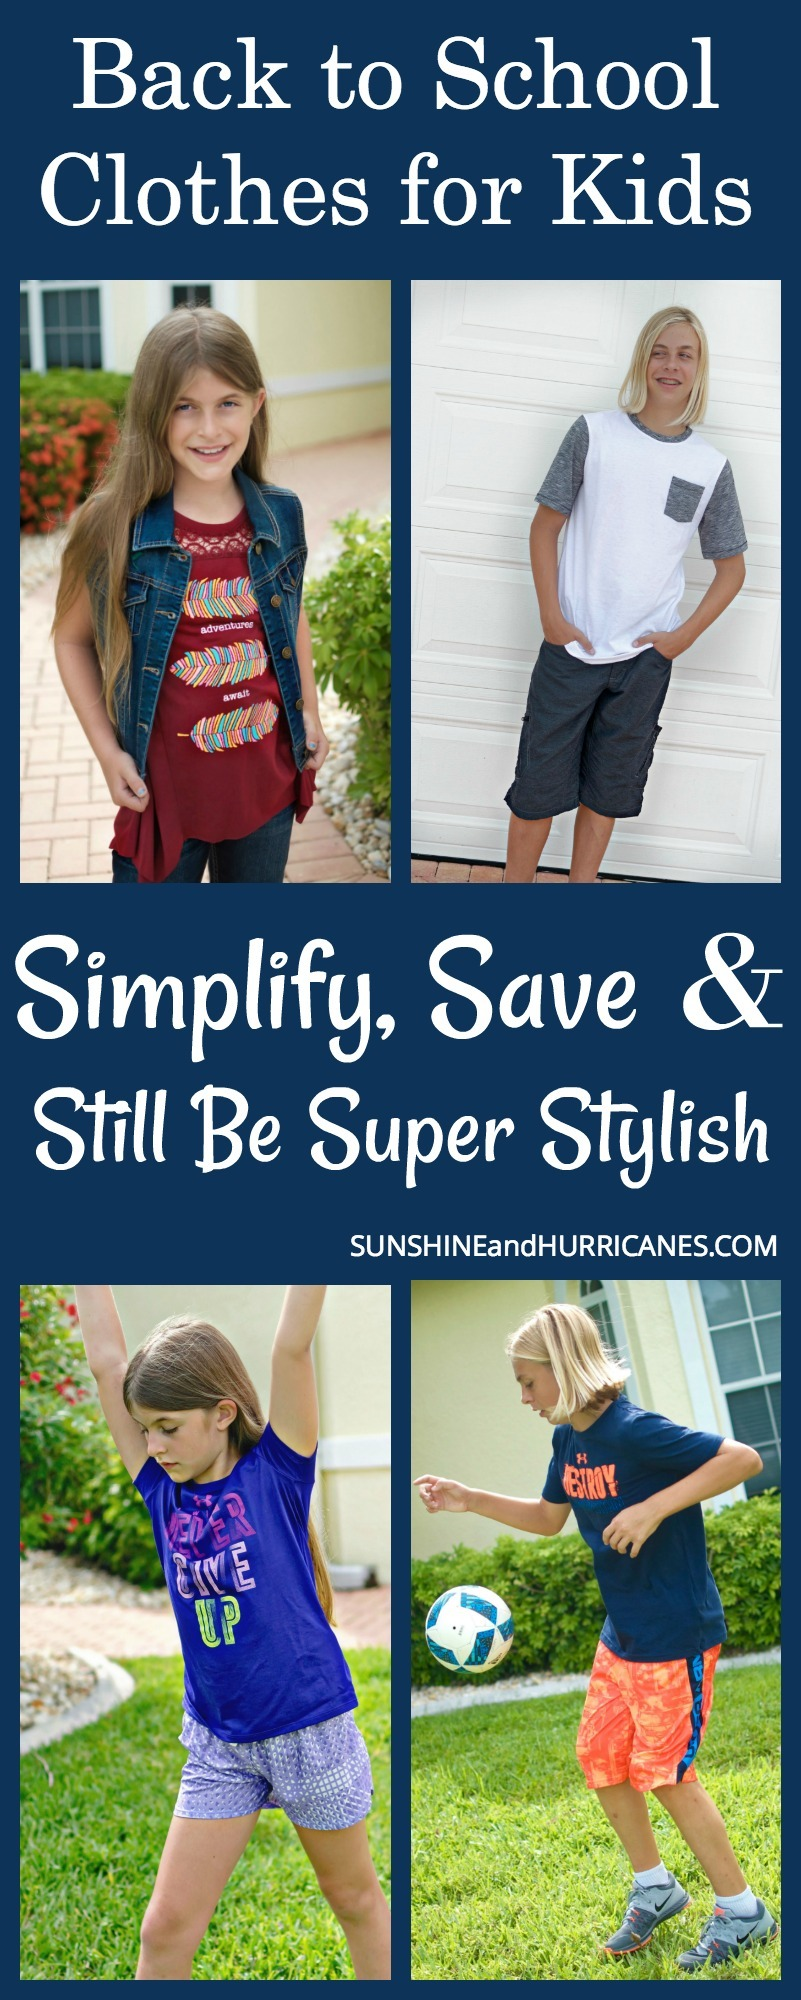 From sports fanatics to fashionistas and everything in between. You can save, simplify and still be SUPER stylish with these tricks and tips for back to school clothes for kids.